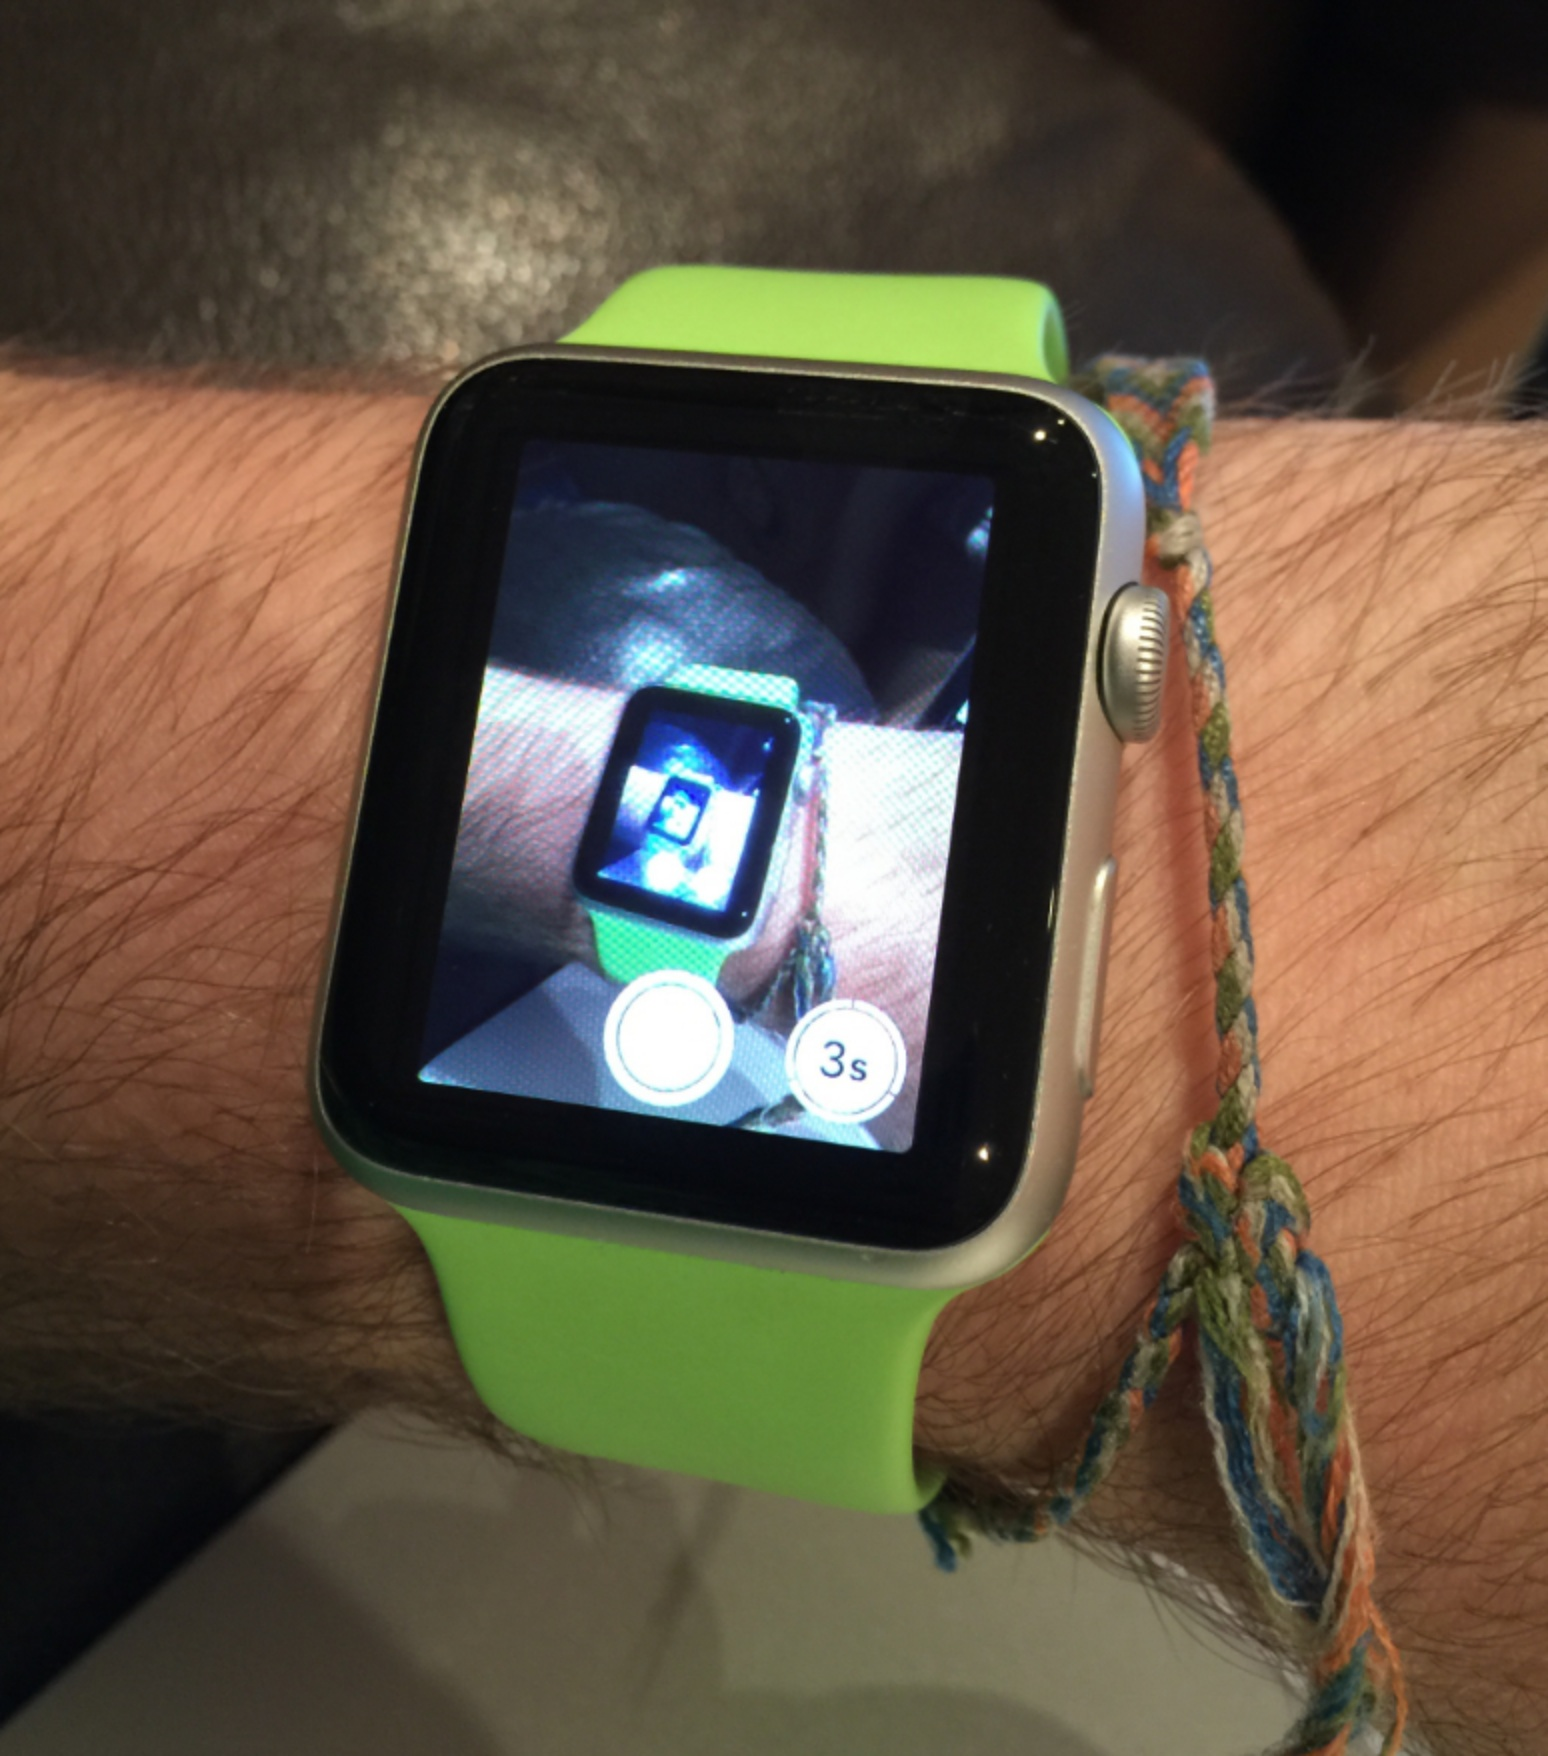 Apple Watch screen showing the phone camera showing the Apple Watch...